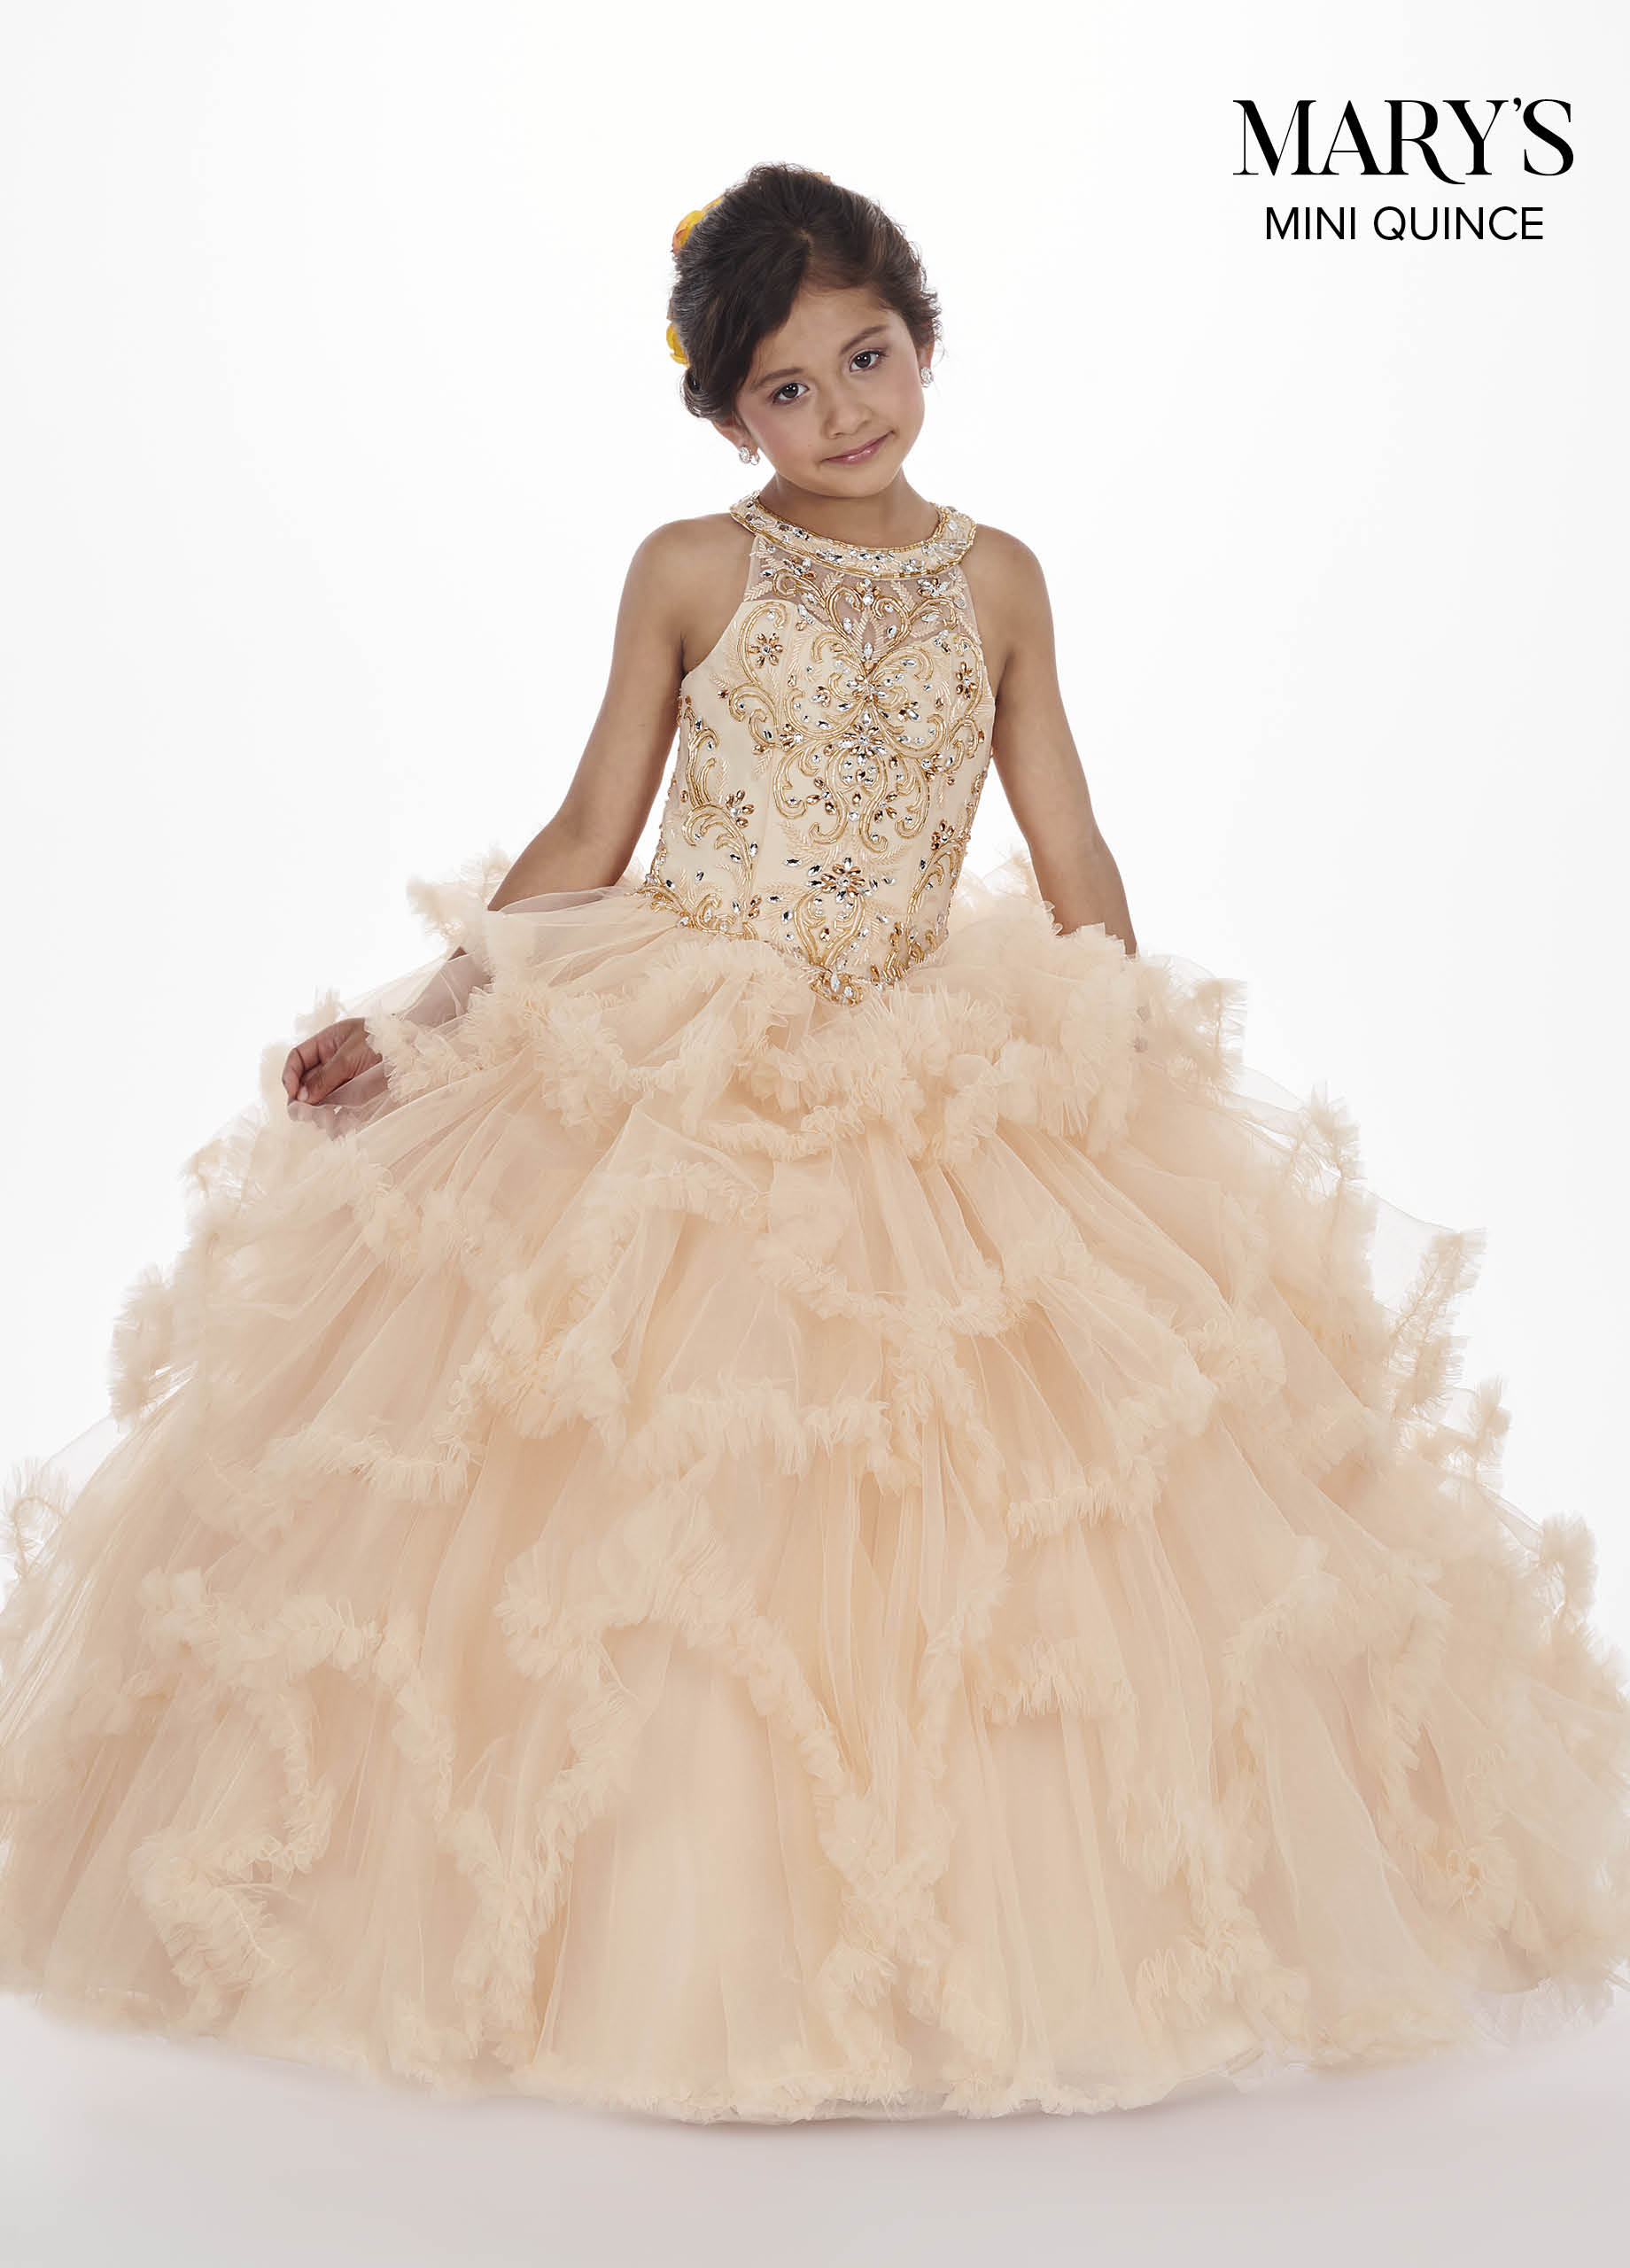 Little Quince Dresses | Mini Quince | Style - MQ4008